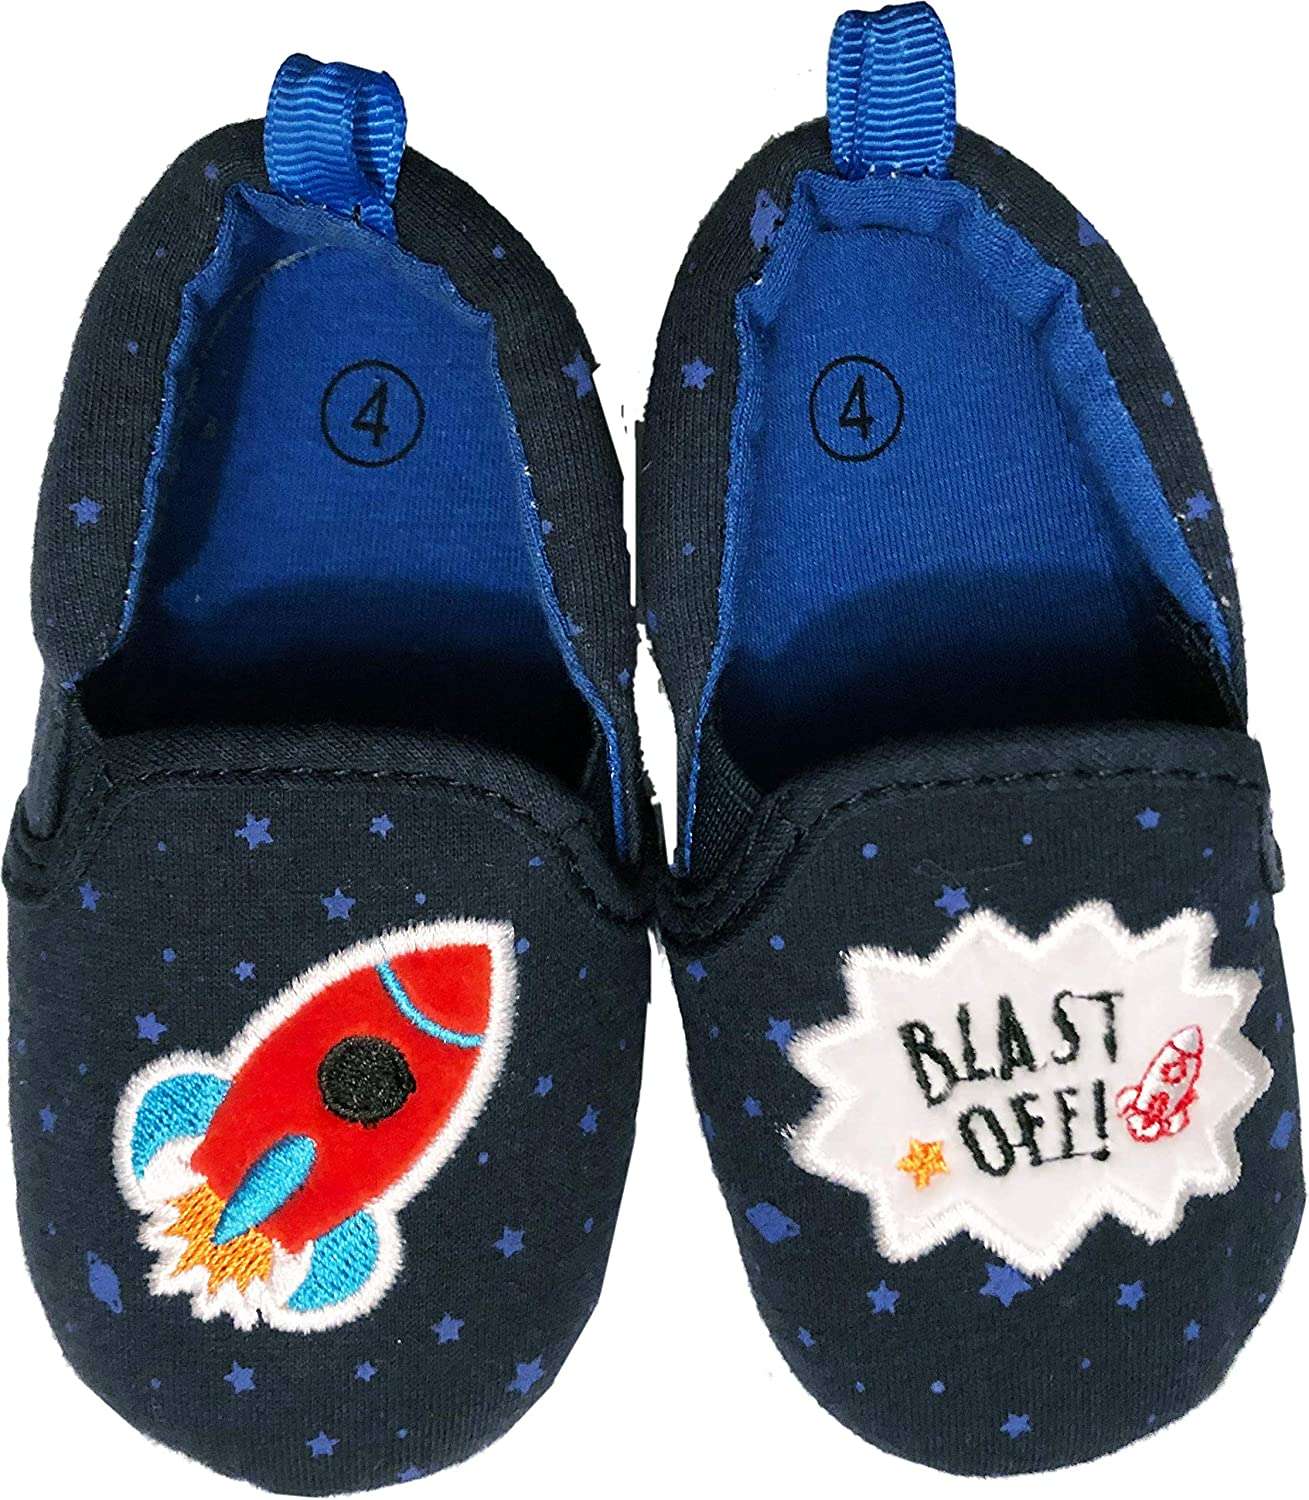 Baby Manufacturer regenerated product Boys Spaceship Shark Fireman Slip Sneakers Casual Desig Max 68% OFF on